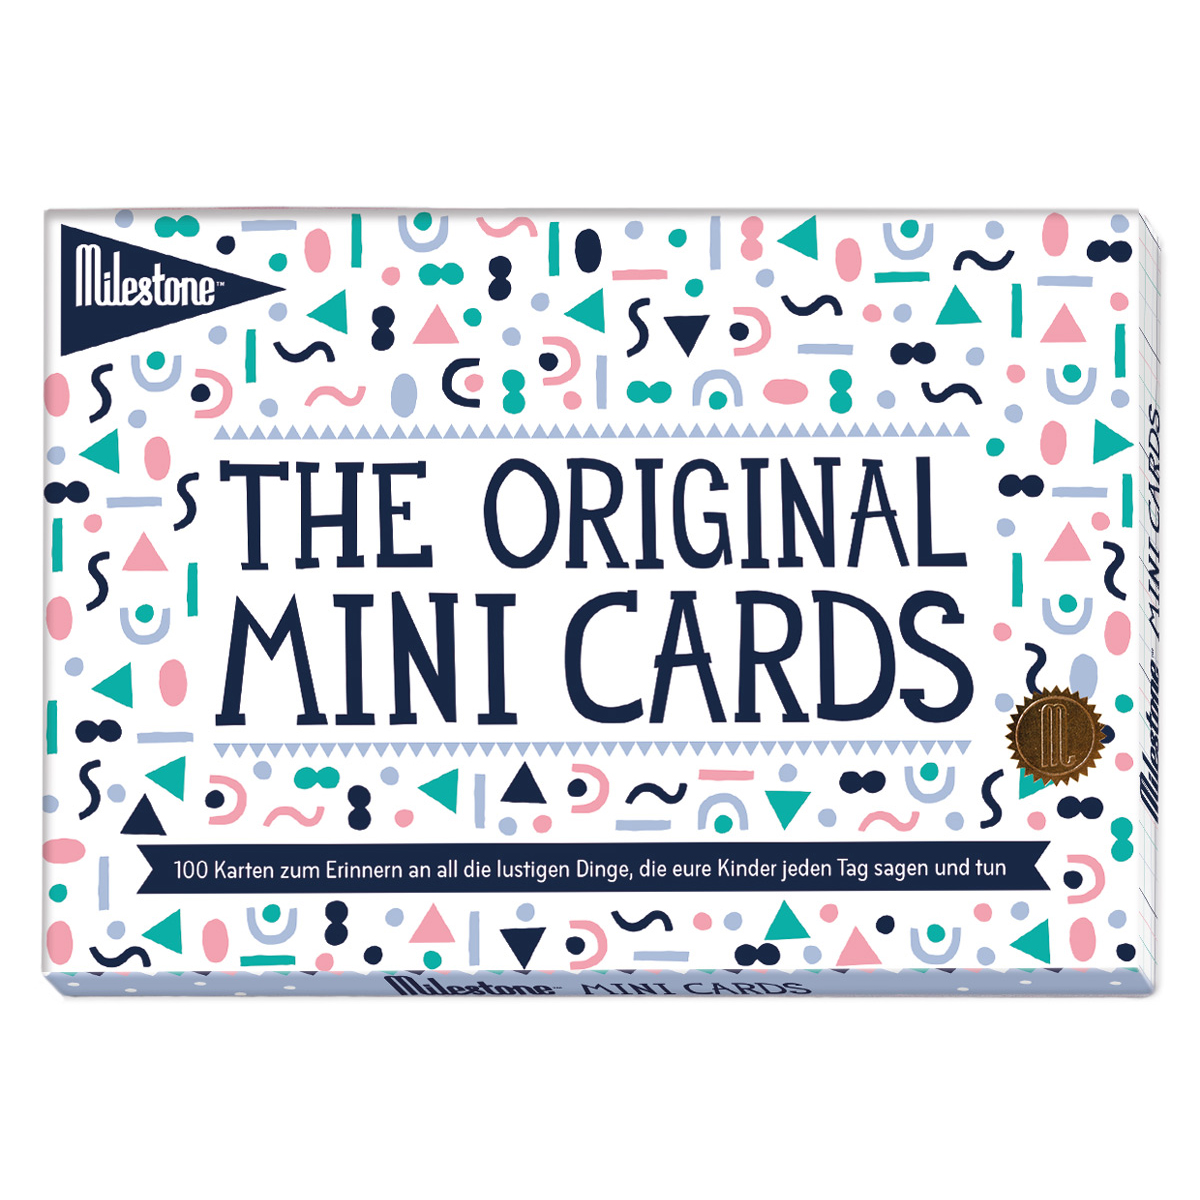 The Original Mini Cards - Milestone